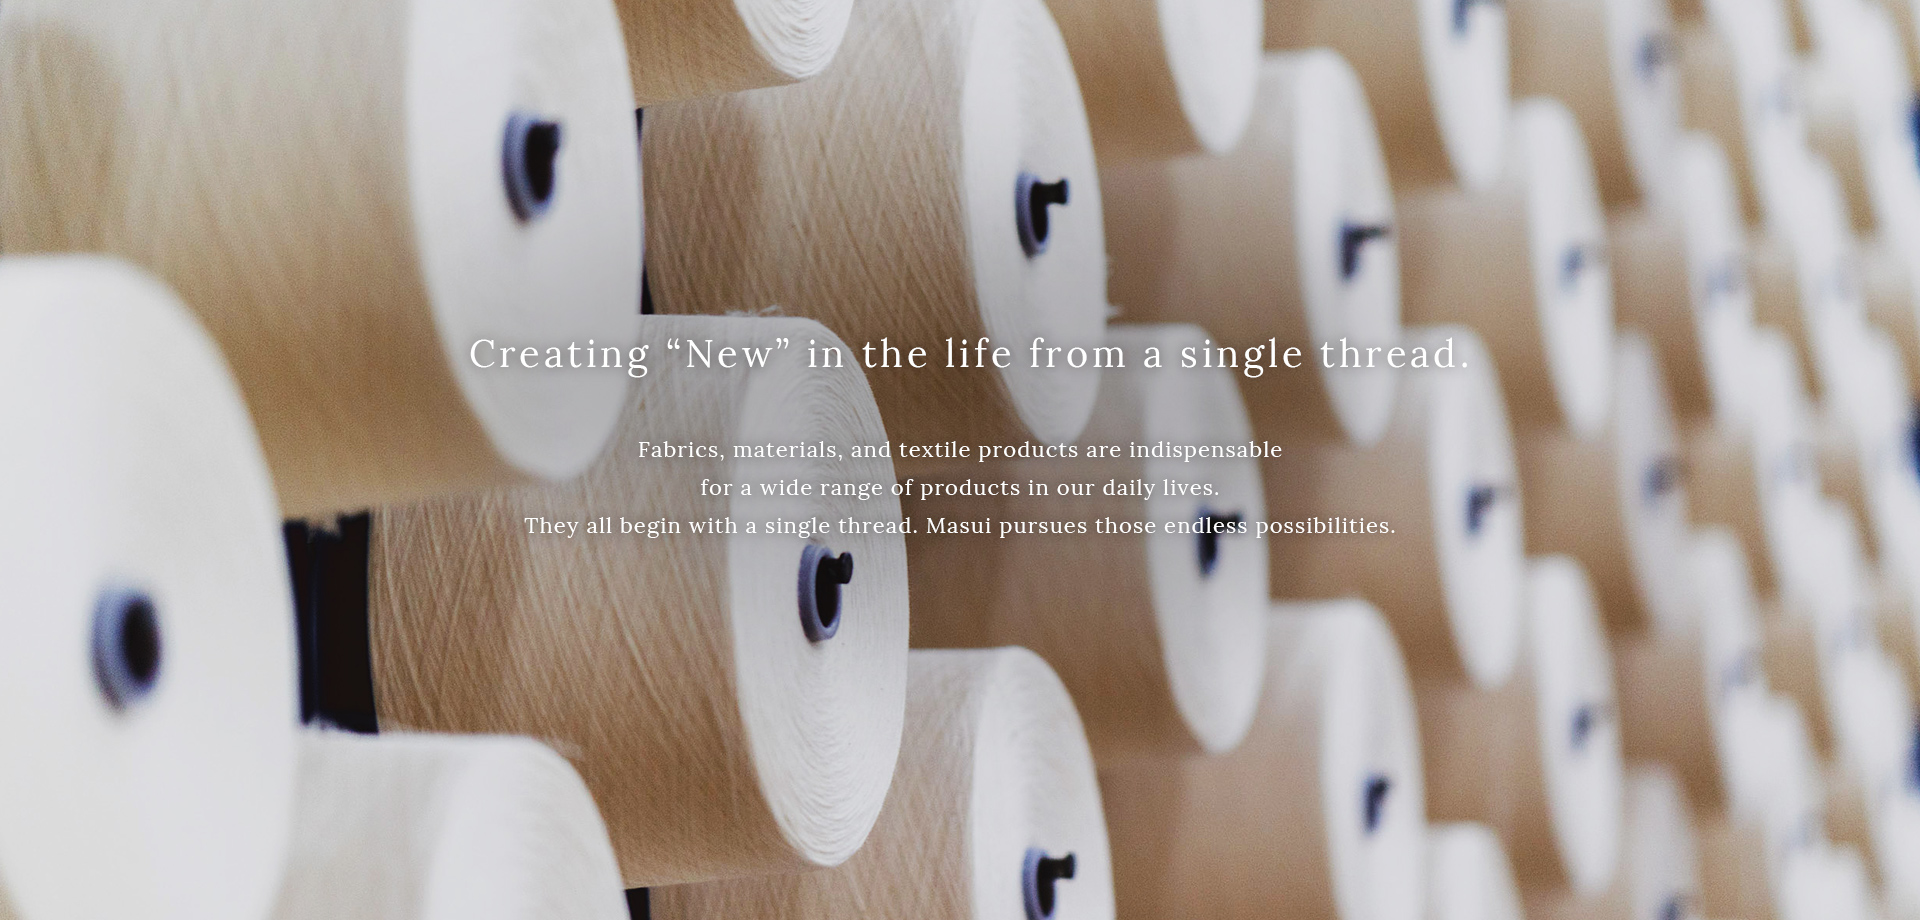 """Creating""""New""""in the life from a single thread. Fabrics, materials, and textile products are indispensable for a wide range of products in our daily lives. They all begin with a single thread. Masui pursues those endless possibilities."""